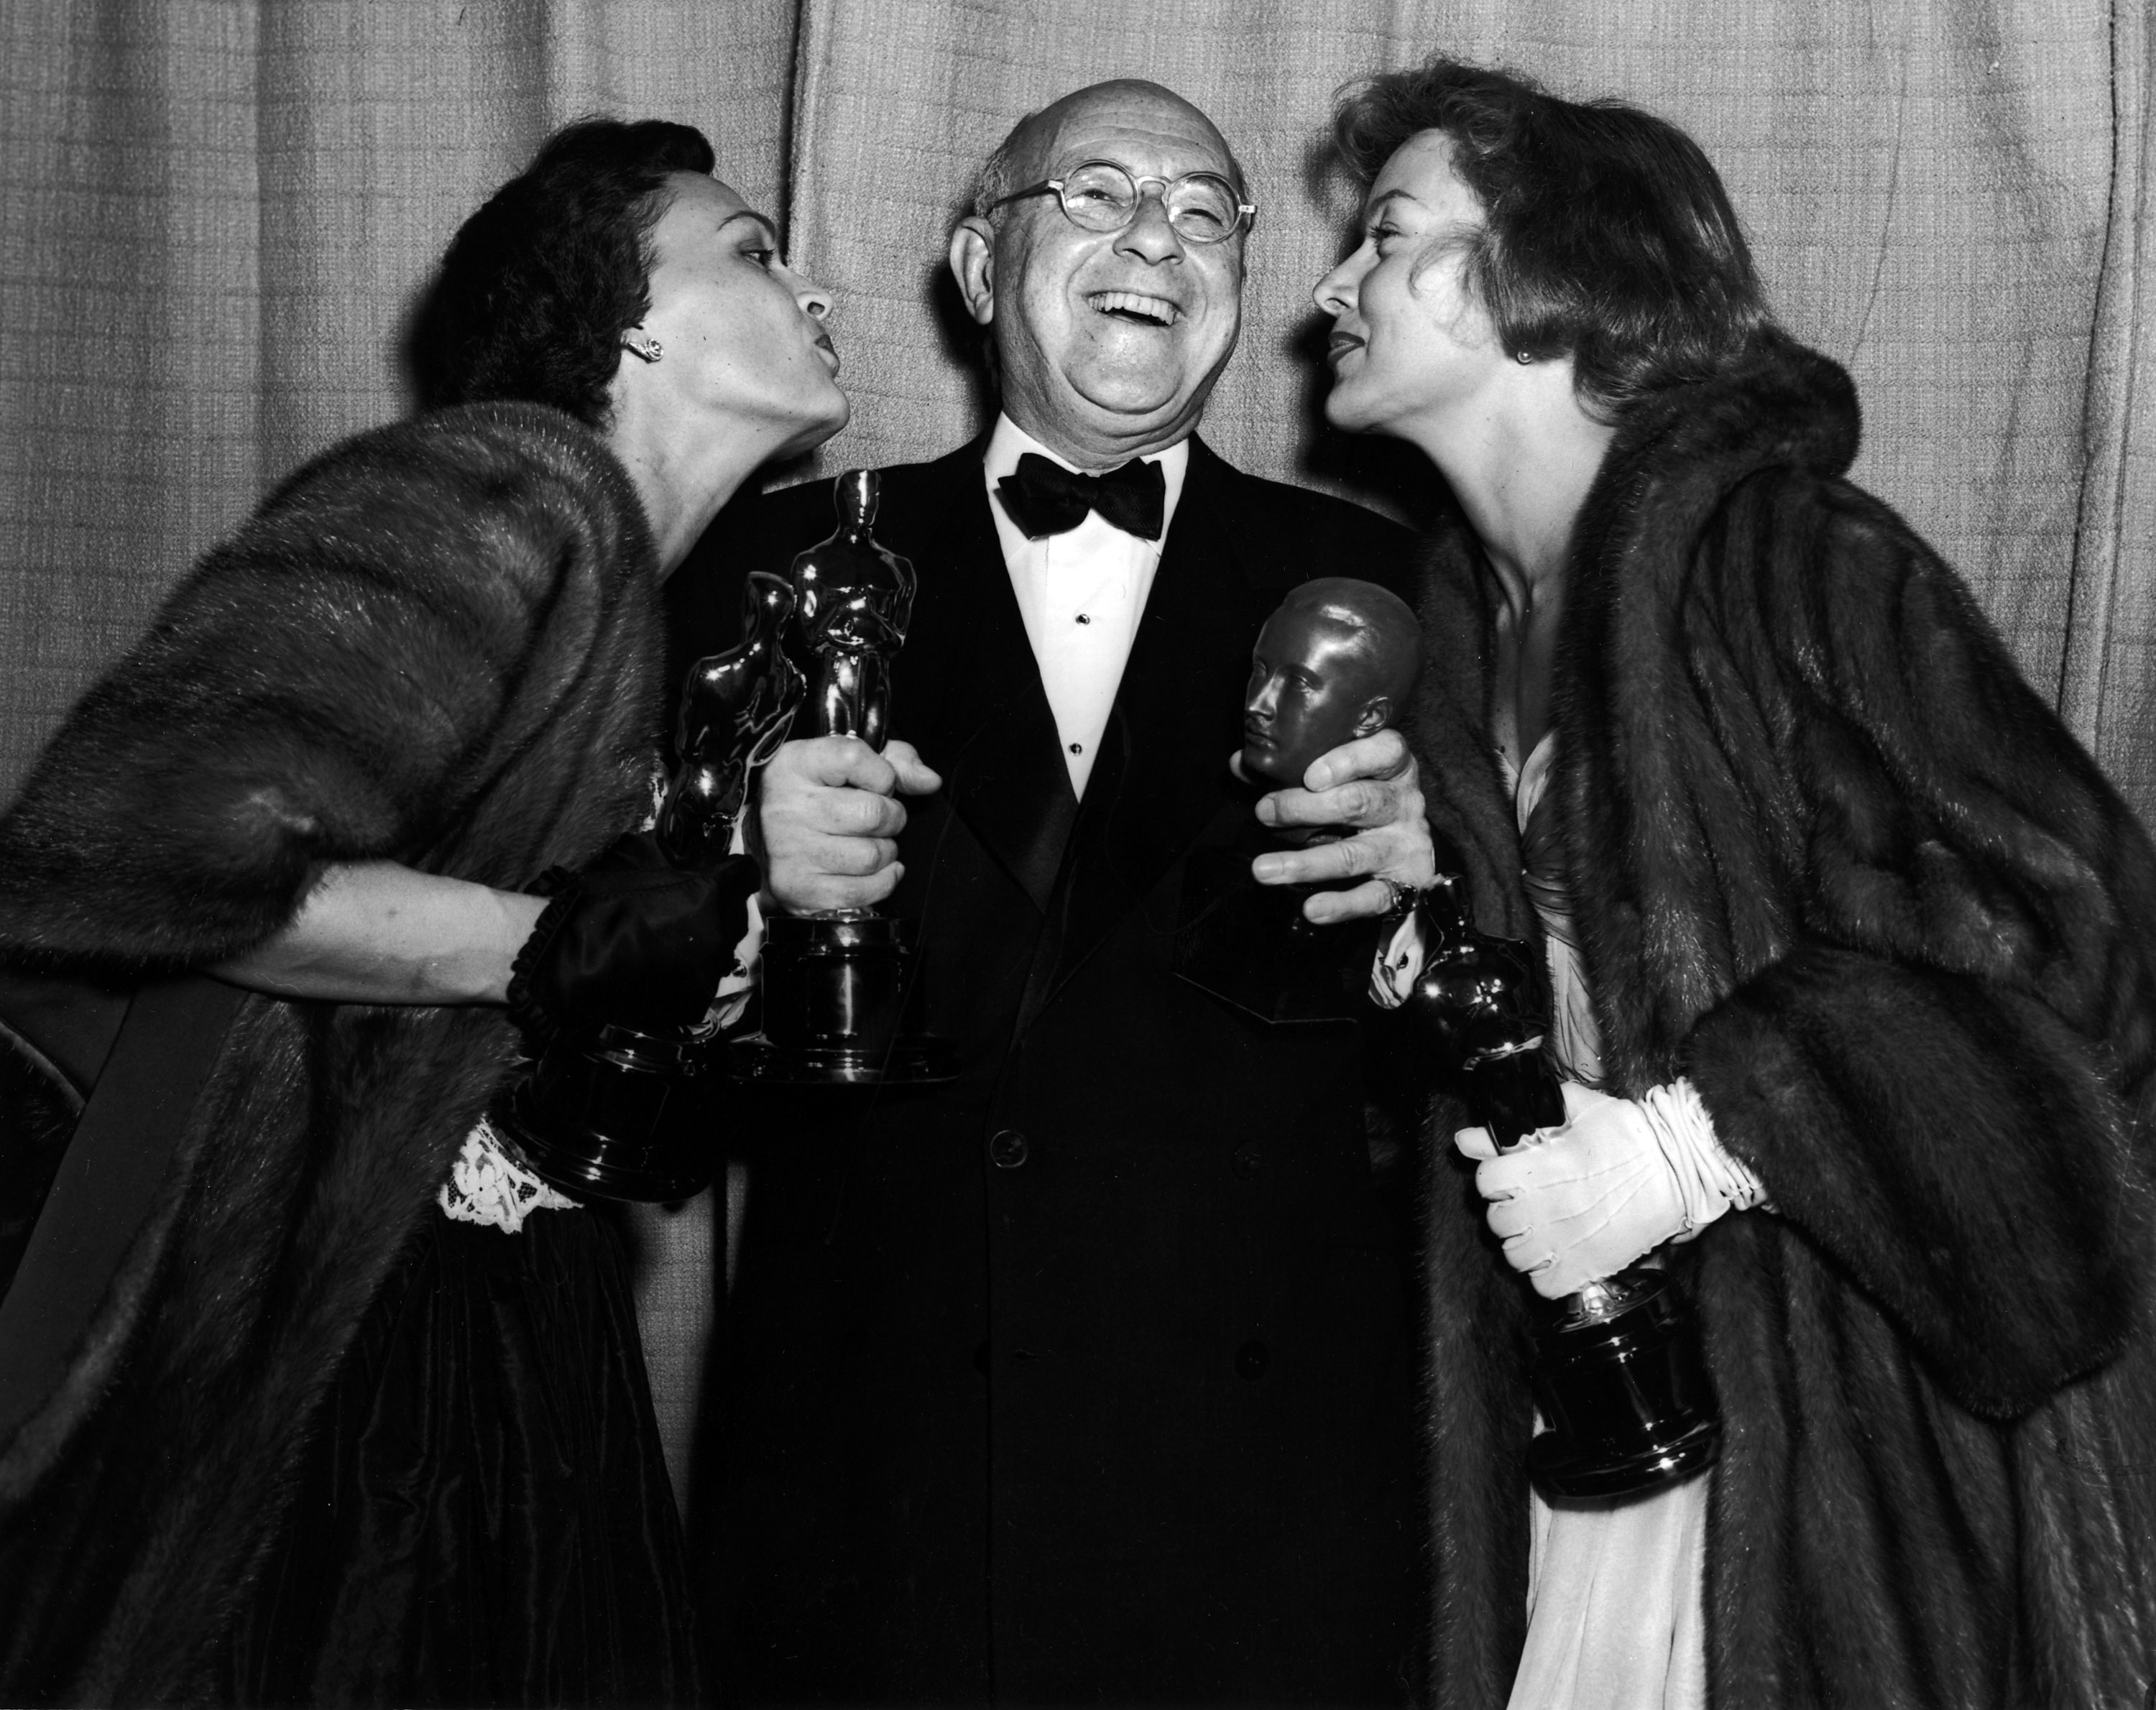 Katherine DeMille Quinn, Cecil B. DeMille, and Gloria Grahame backstage at the 1952 (25th) Academy Awards ceremony.